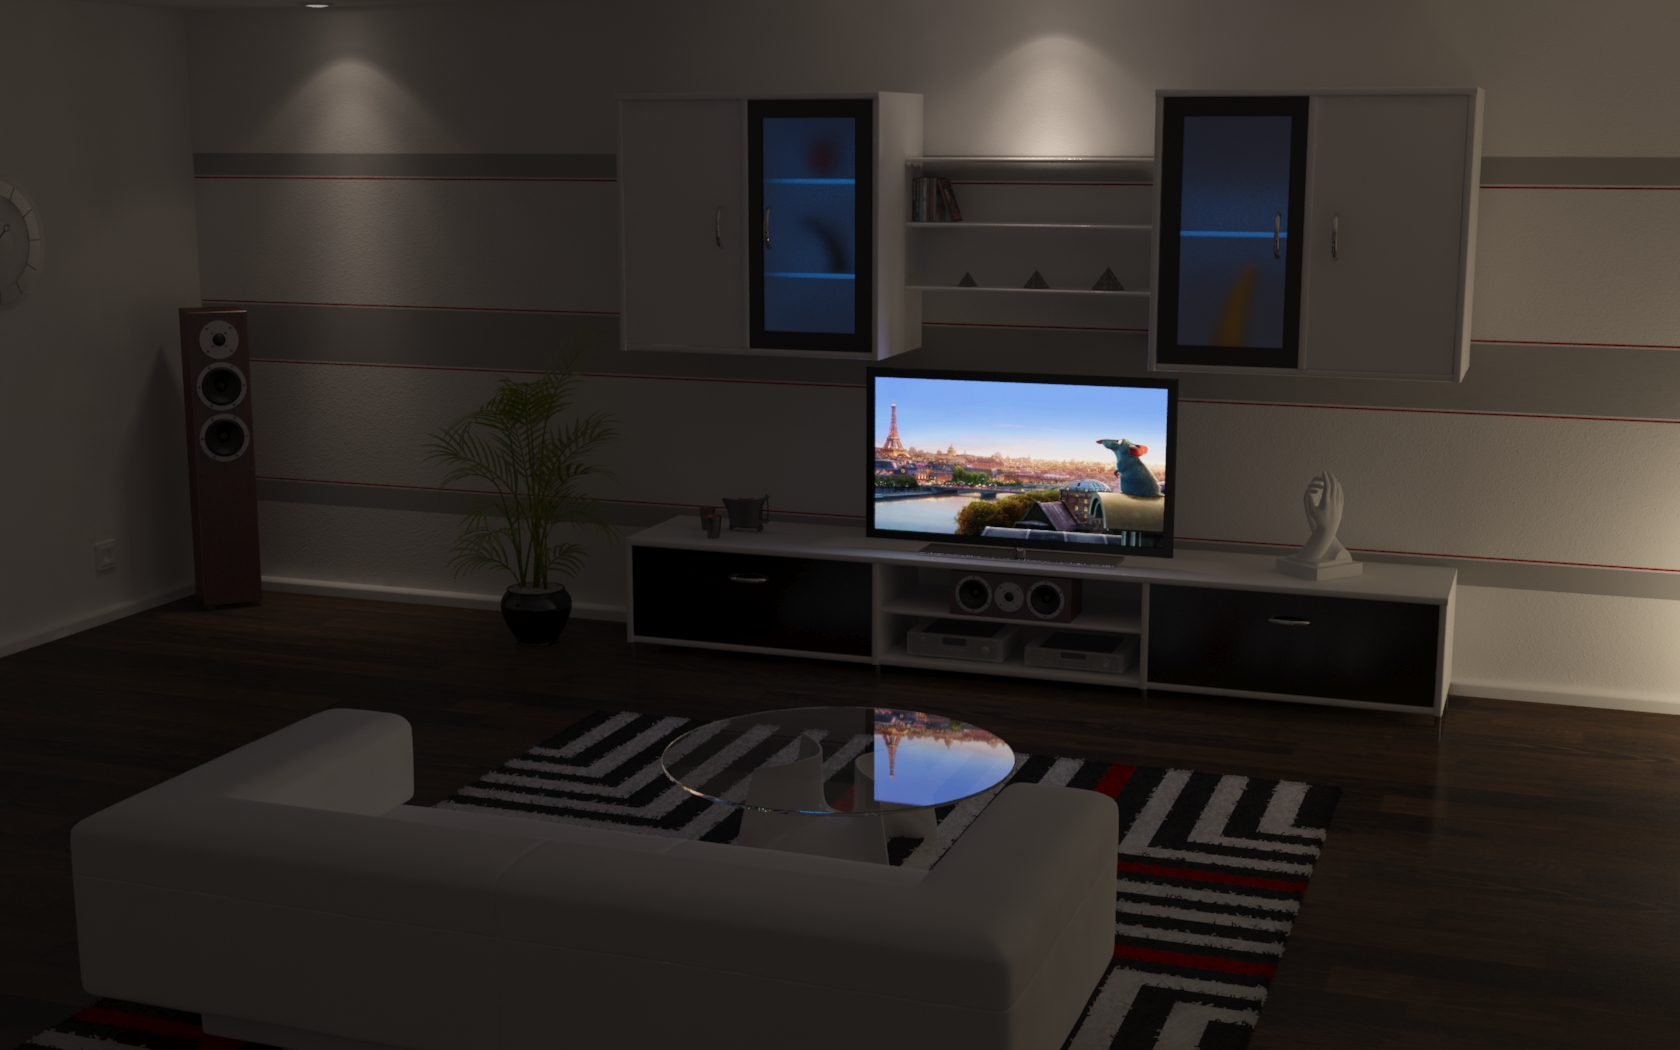 Living room at night by maxter83 on deviantart for The family room nightclub